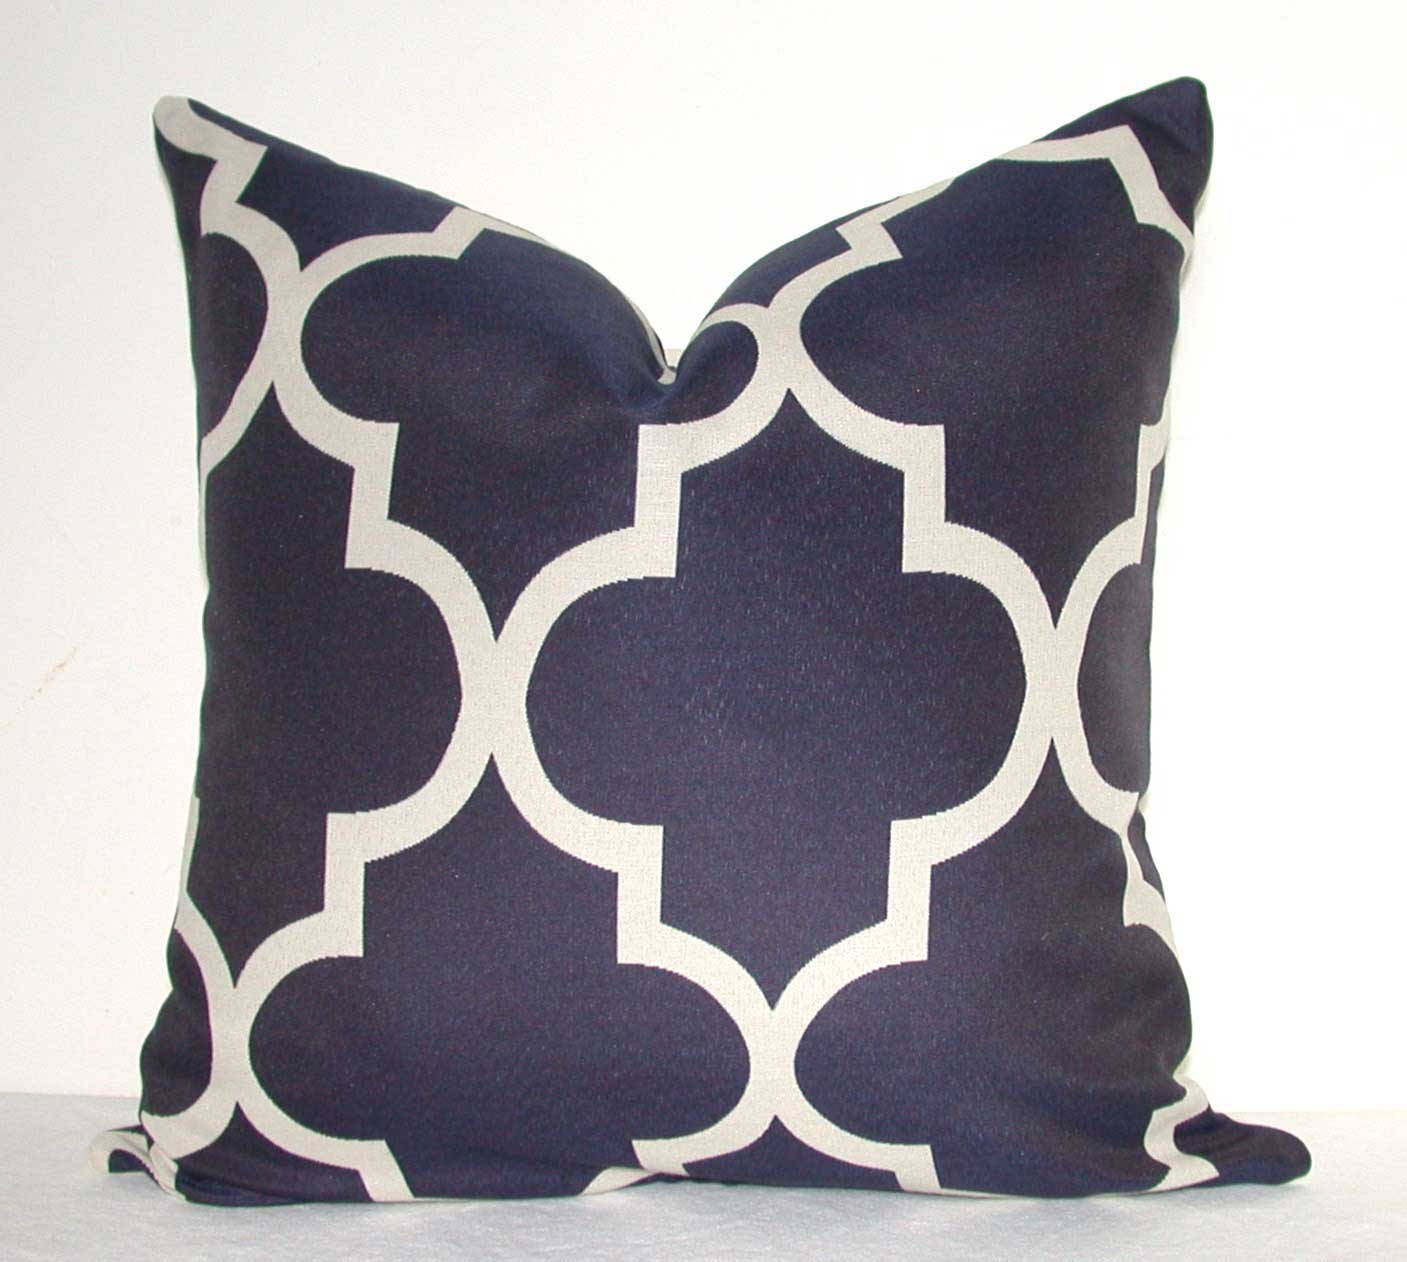 Throw Pillows For Sofa Images : Accent Pillows For Sofa Feel The Home